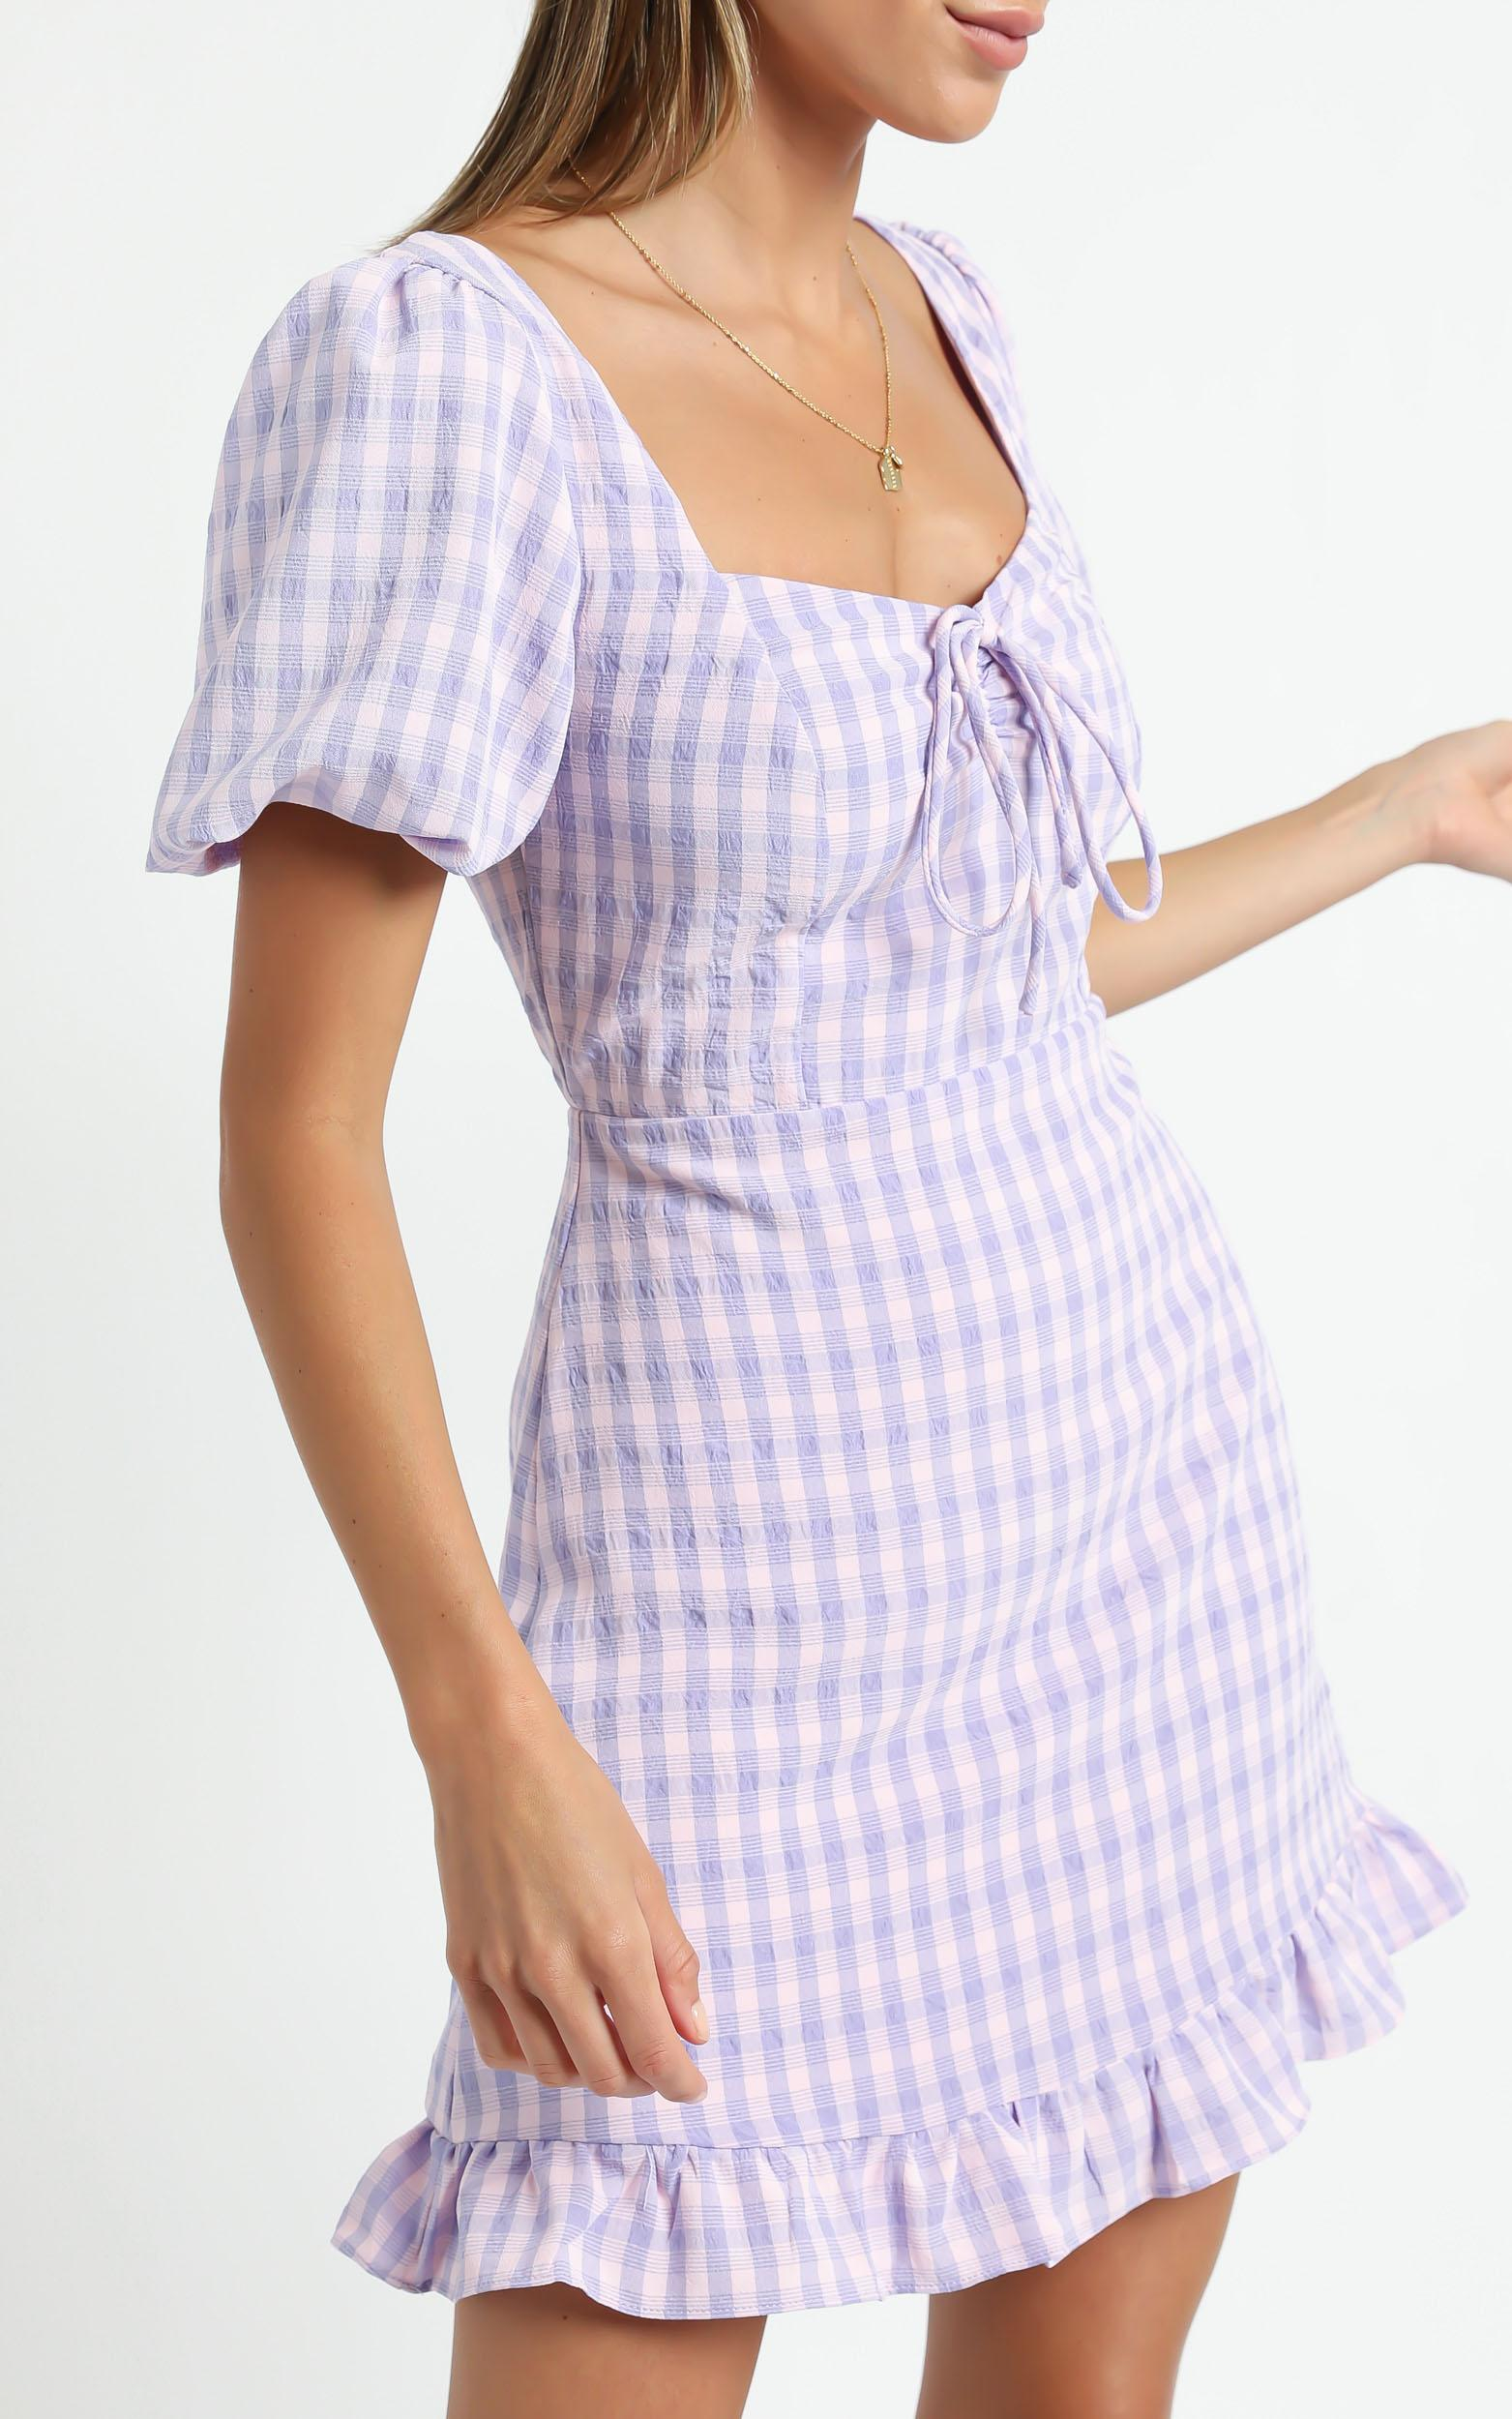 Fifi Dress in Purple Check - 6 (XS), Purple, hi-res image number null